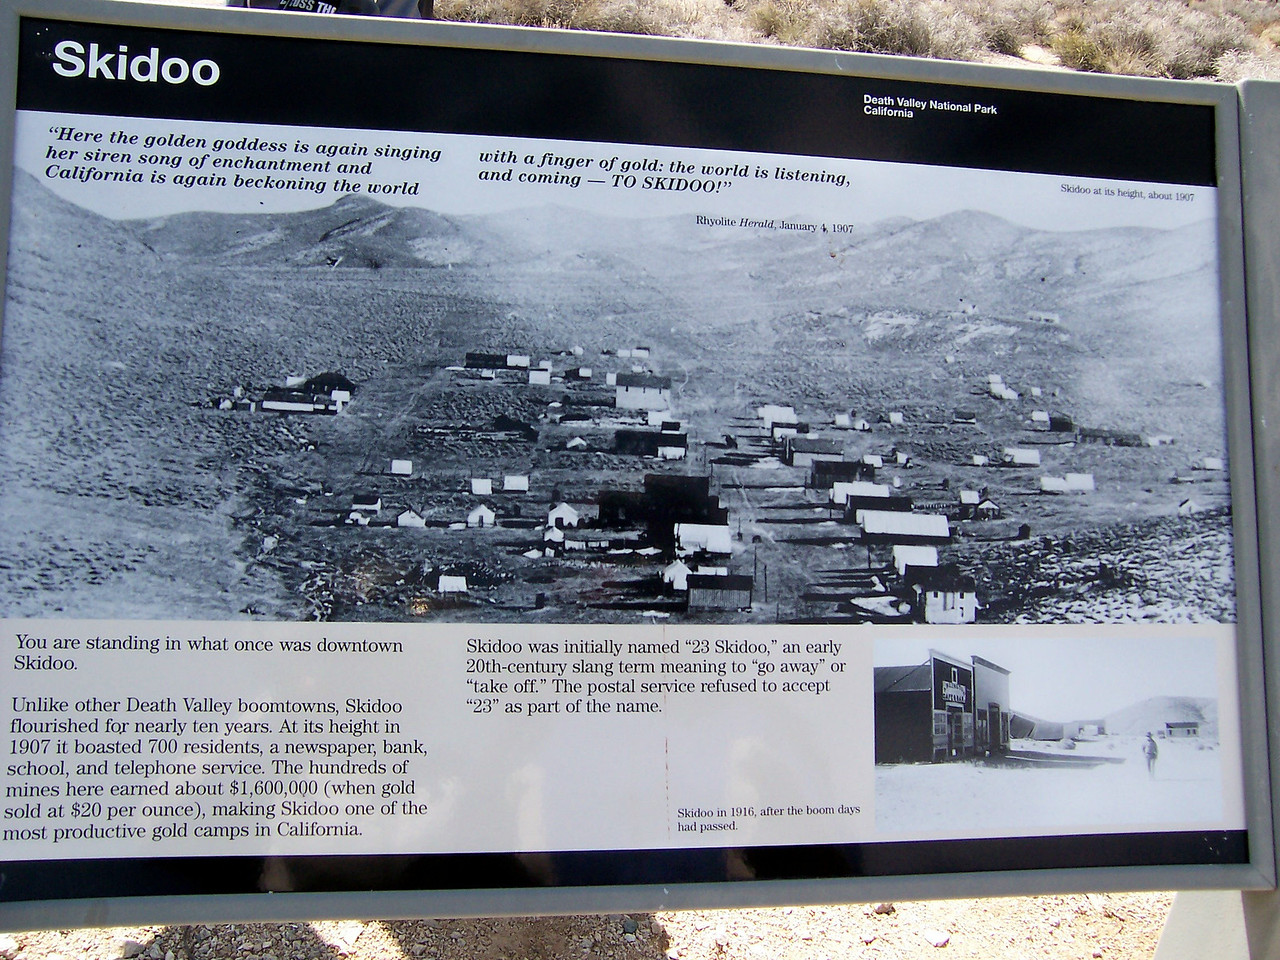 700 people lived up here and dug gold mines all over the place..over a 1,000 of them